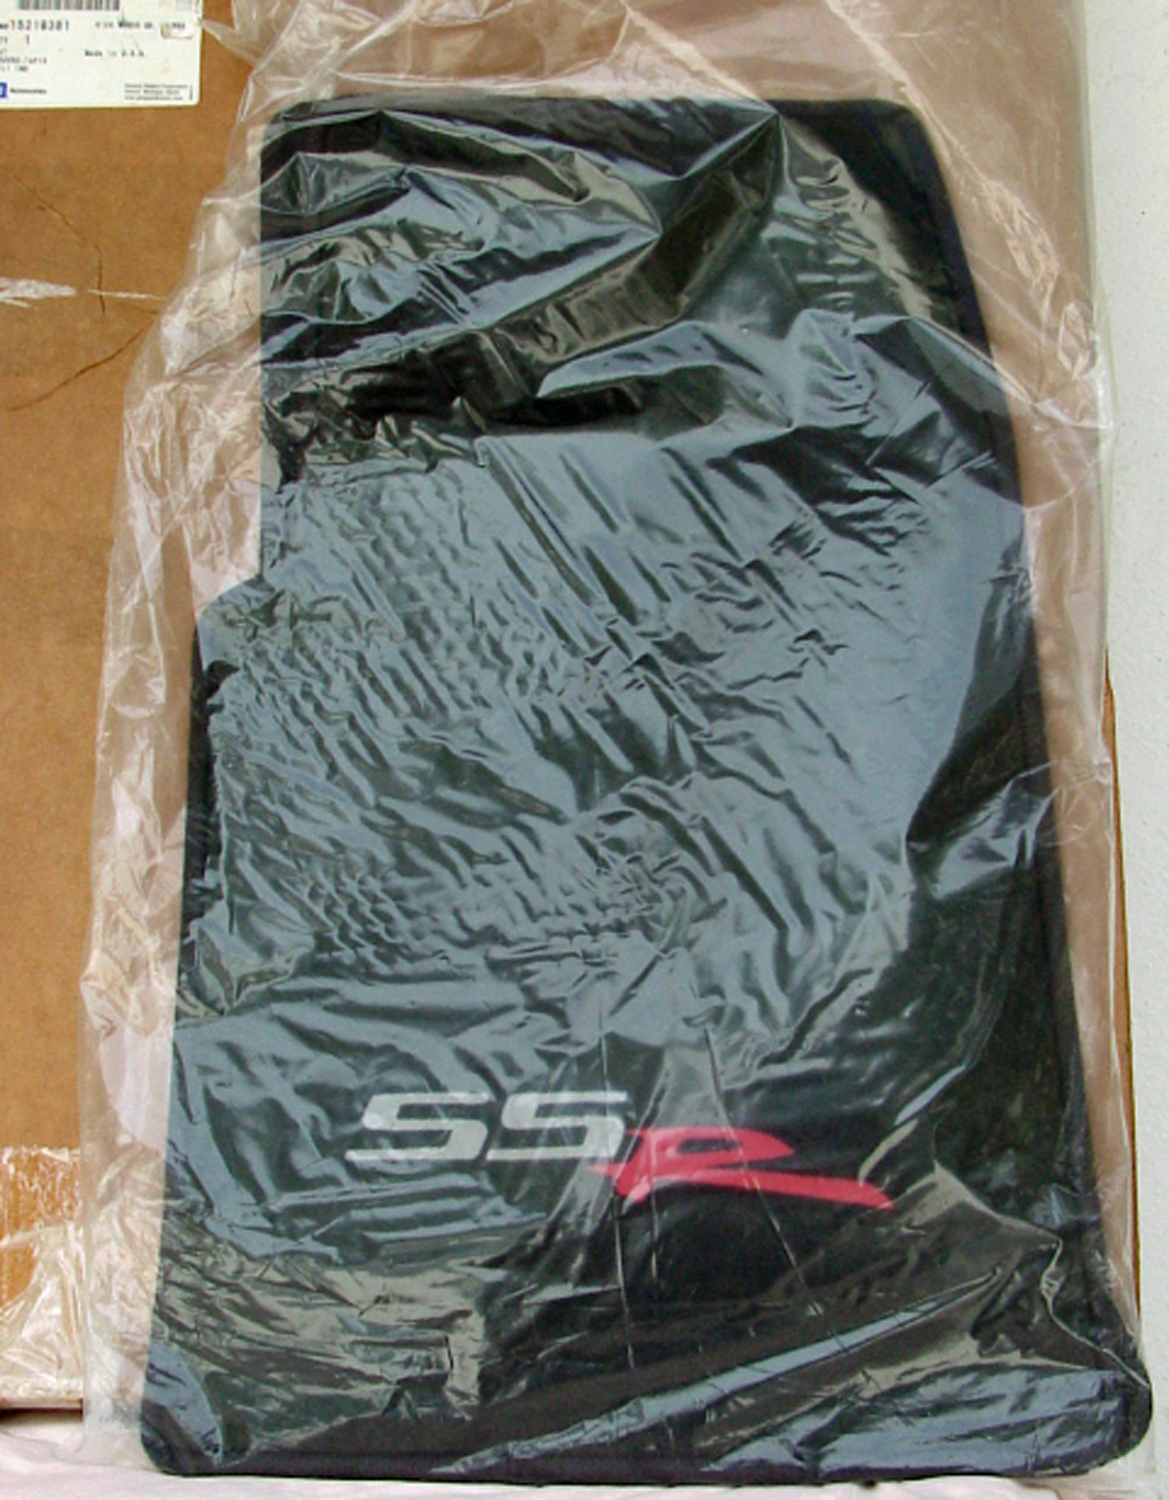 Parts 4 sale - 2005-2006 floor mat set - gm n.o.s. - brand new-fanatics-mats-nos-2.jpg